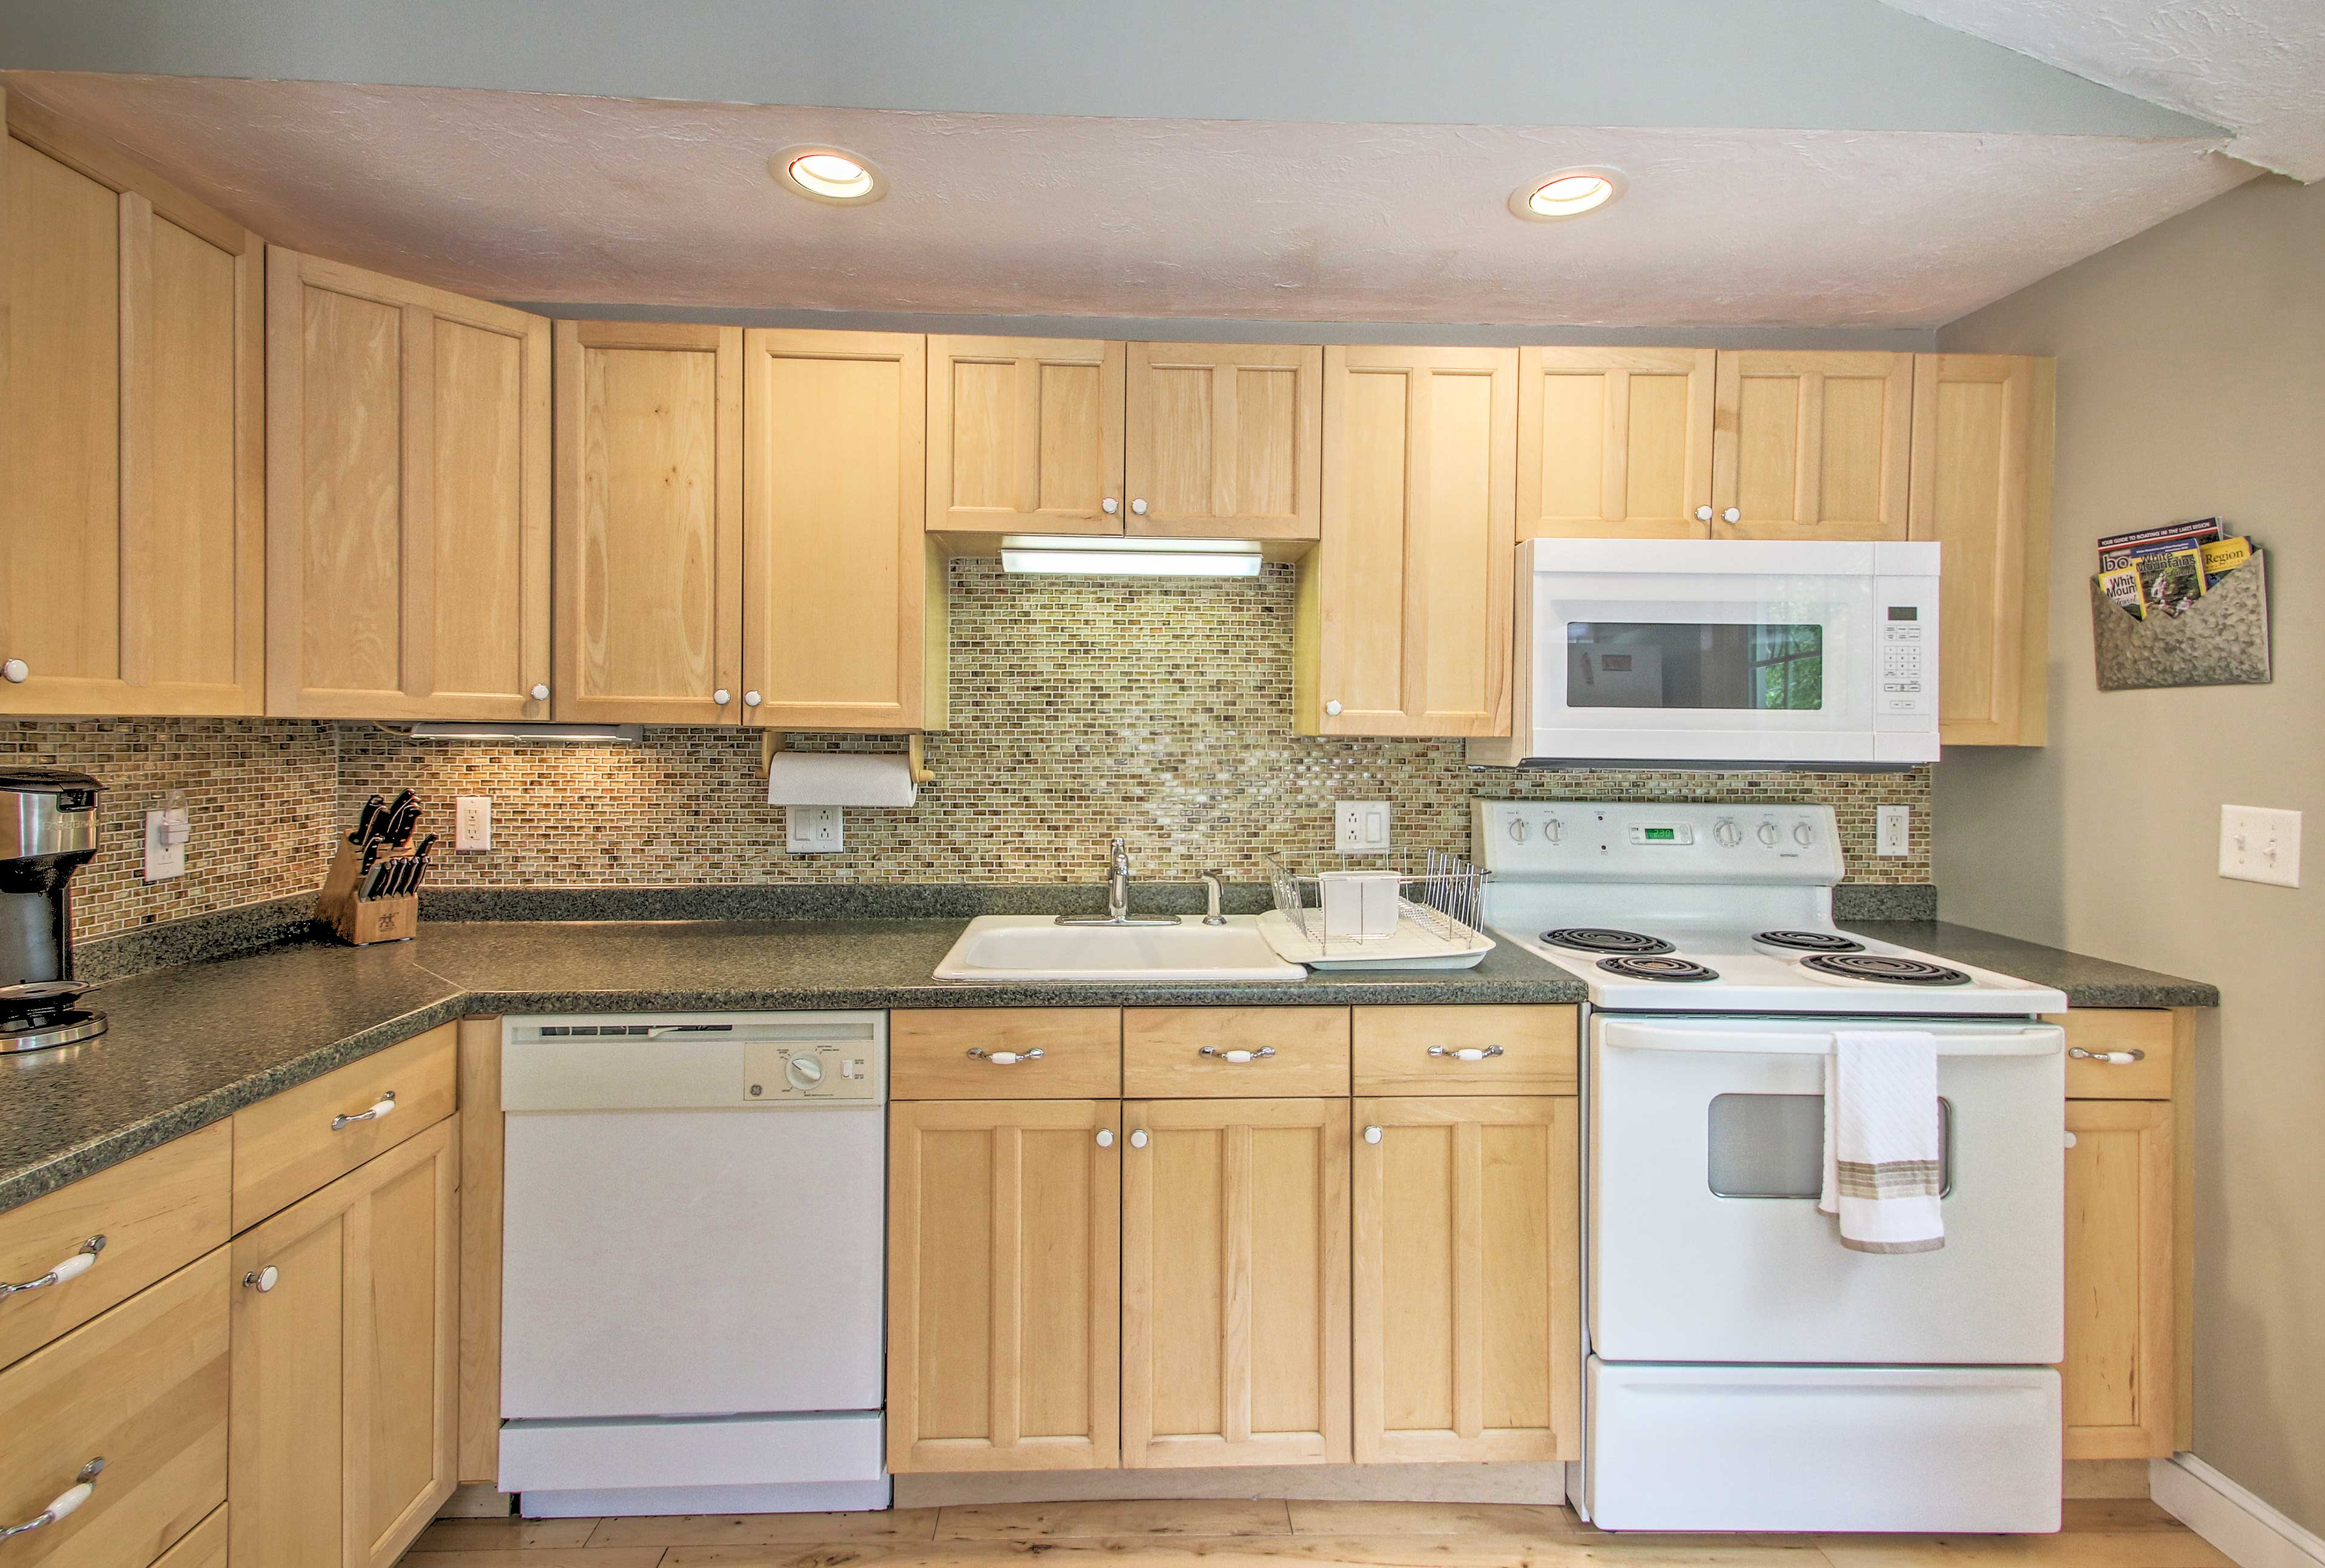 Step into the fully equipped kitchen and skip a dinner tab!